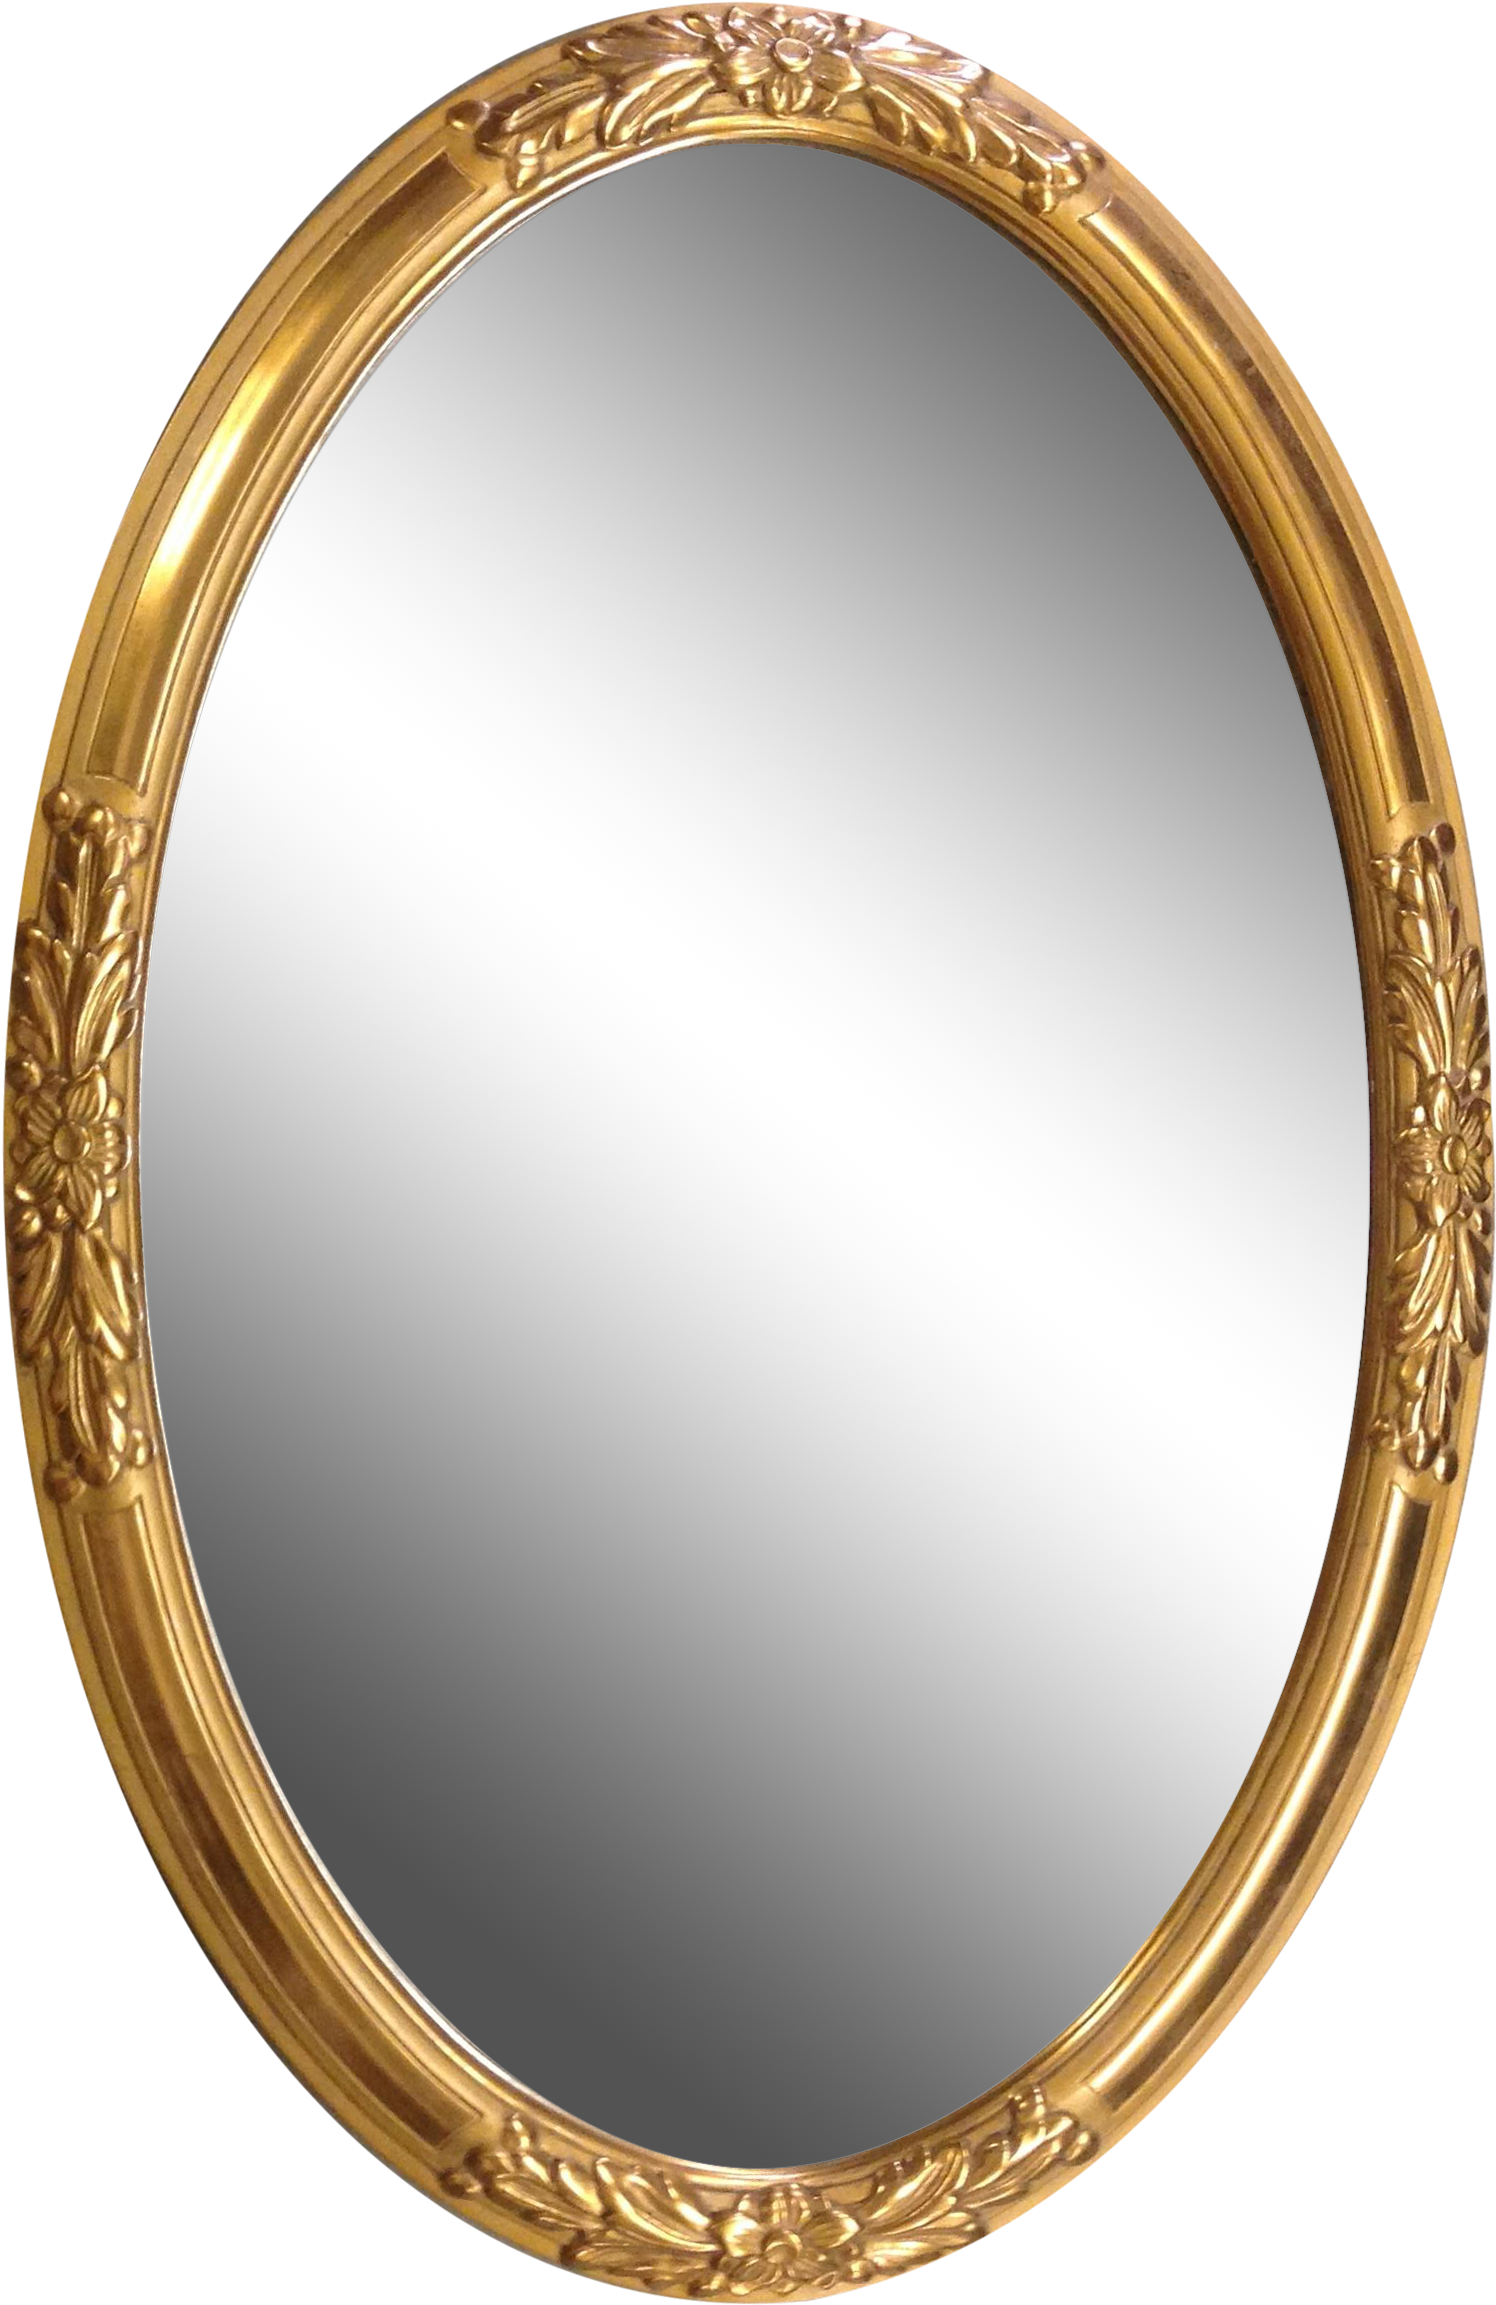 Oval Mirror Frame Png Clipart Full Size Clipart 1256935 Pinclipart